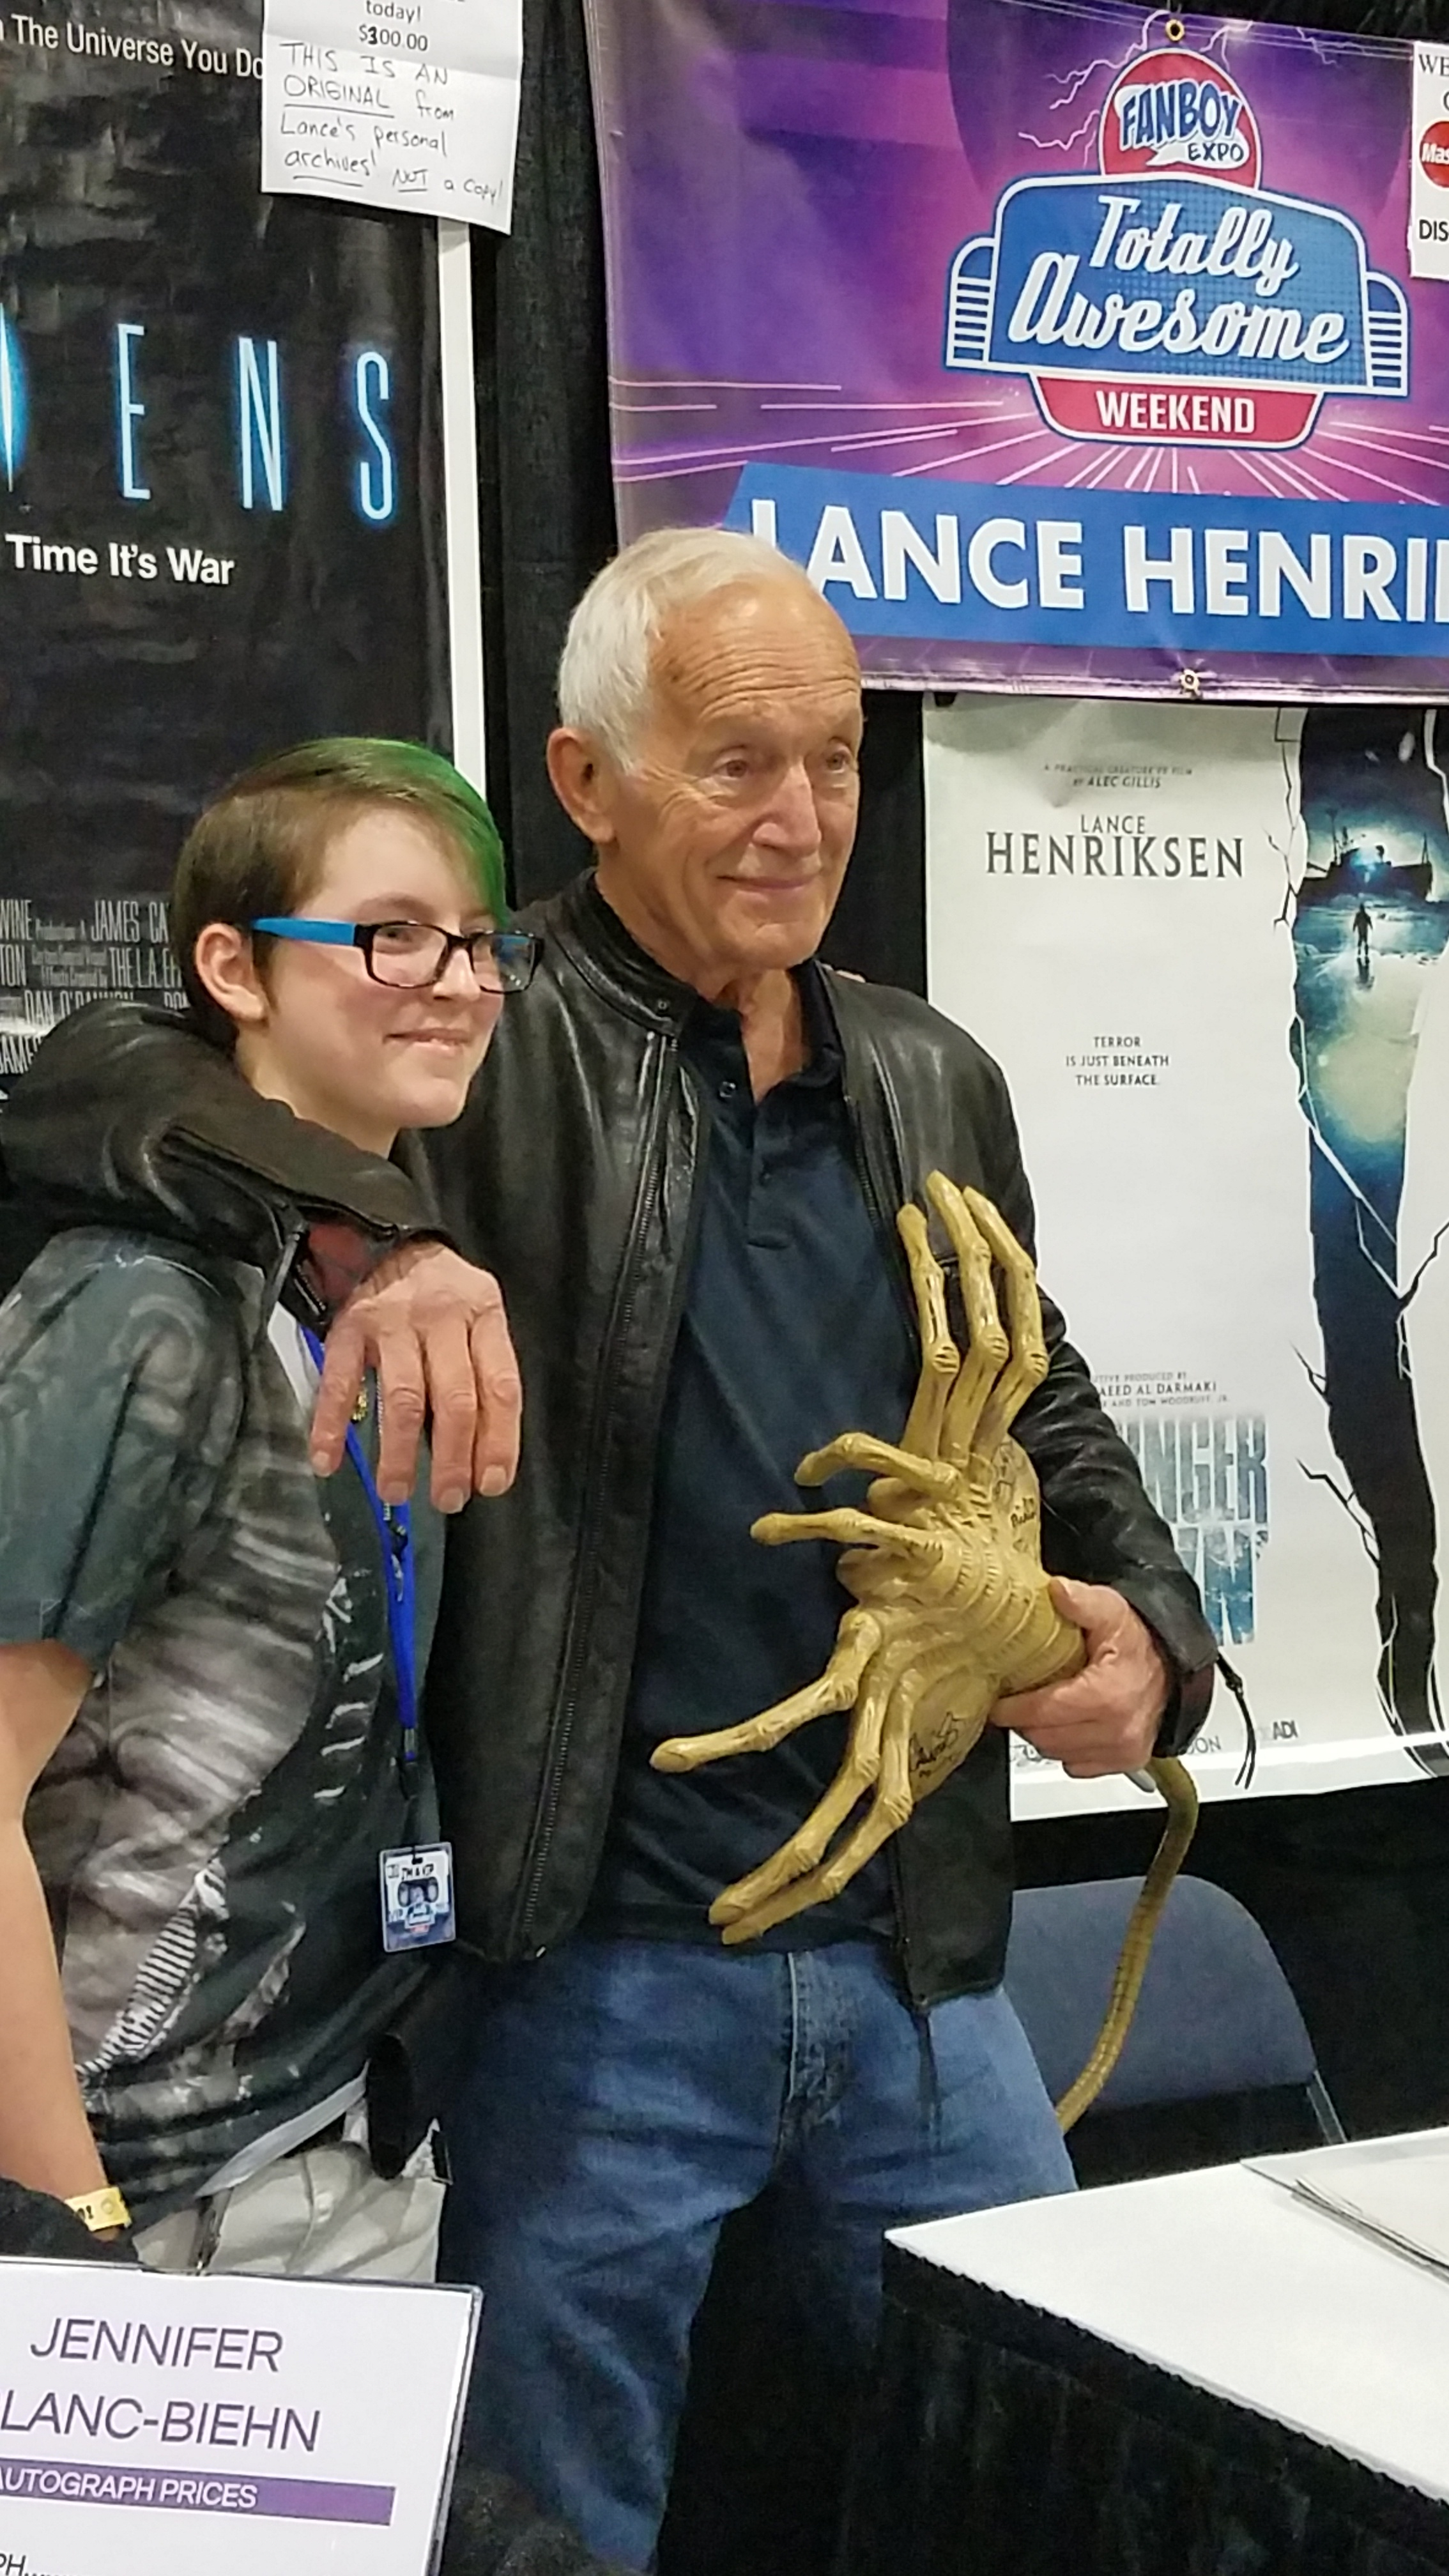 Lance Henriksen at Fanboy expo TN - Conventions & Events - This Is